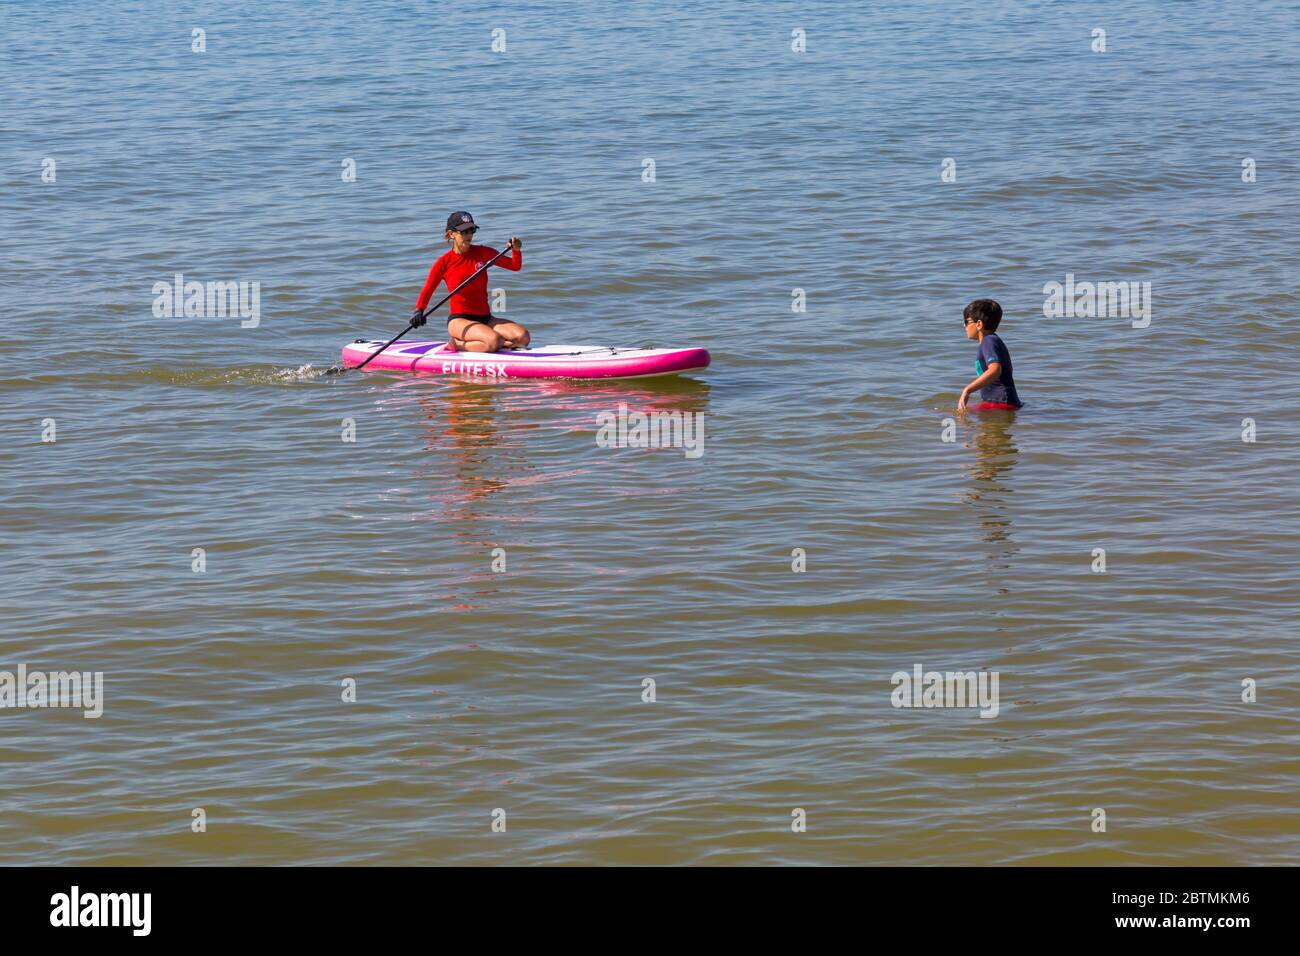 Poole, Dorset UK. 27th May 2020. UK weather: another hot sunny day at Poole beaches with clear blue skies and unbroken sunshine, as the glorious weather continues and temperatures rise. Sunseekers head to the seaside to enjoy the sunshine. Credit: Carolyn Jenkins/Alamy Live News Stock Photo